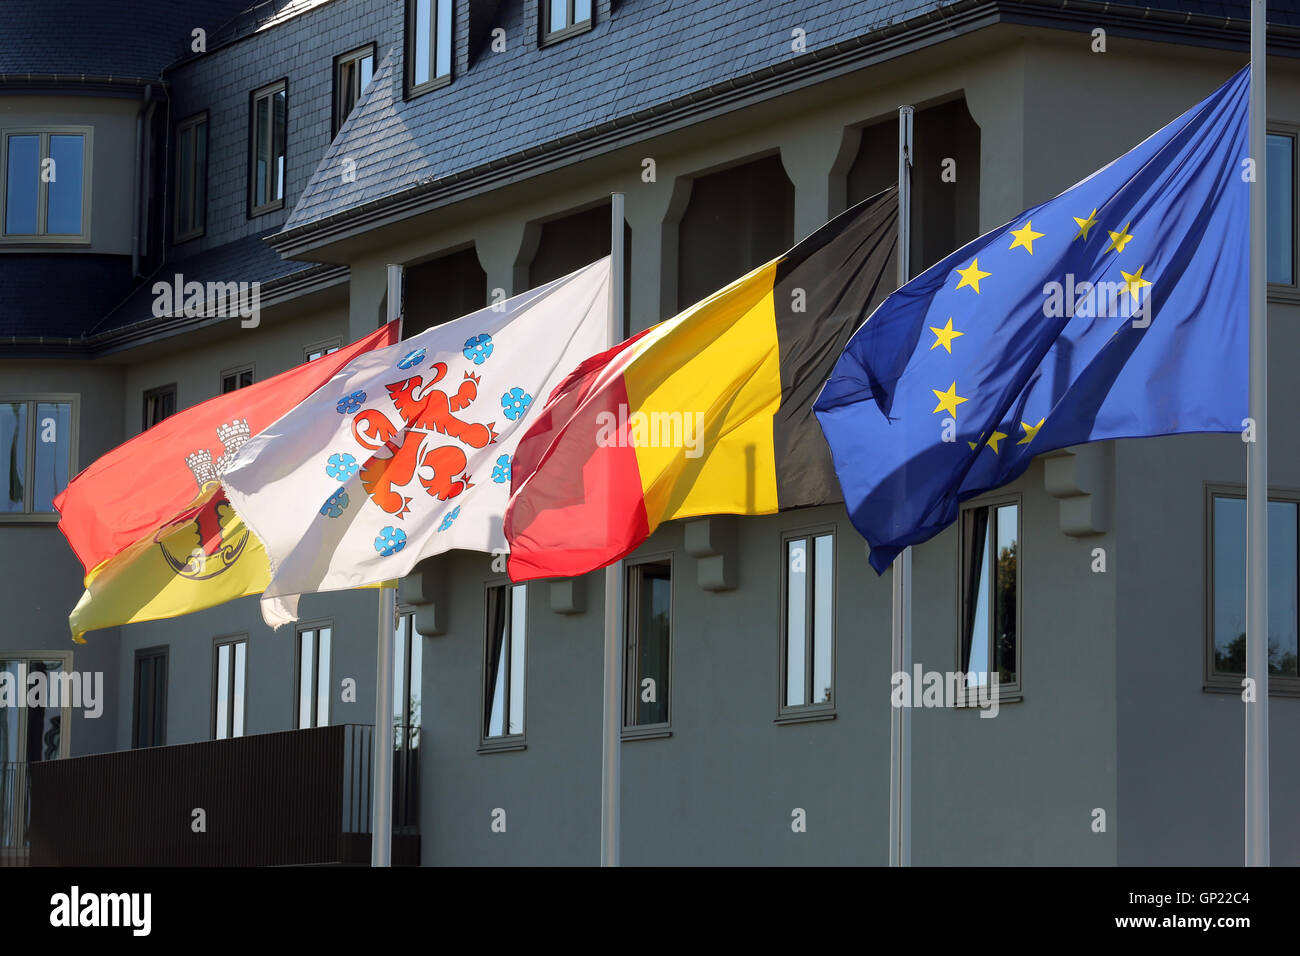 Parliament building of the German speaking Community in Eupen, Belgium. Flags from left to right: City of Eupen, Stock Photo